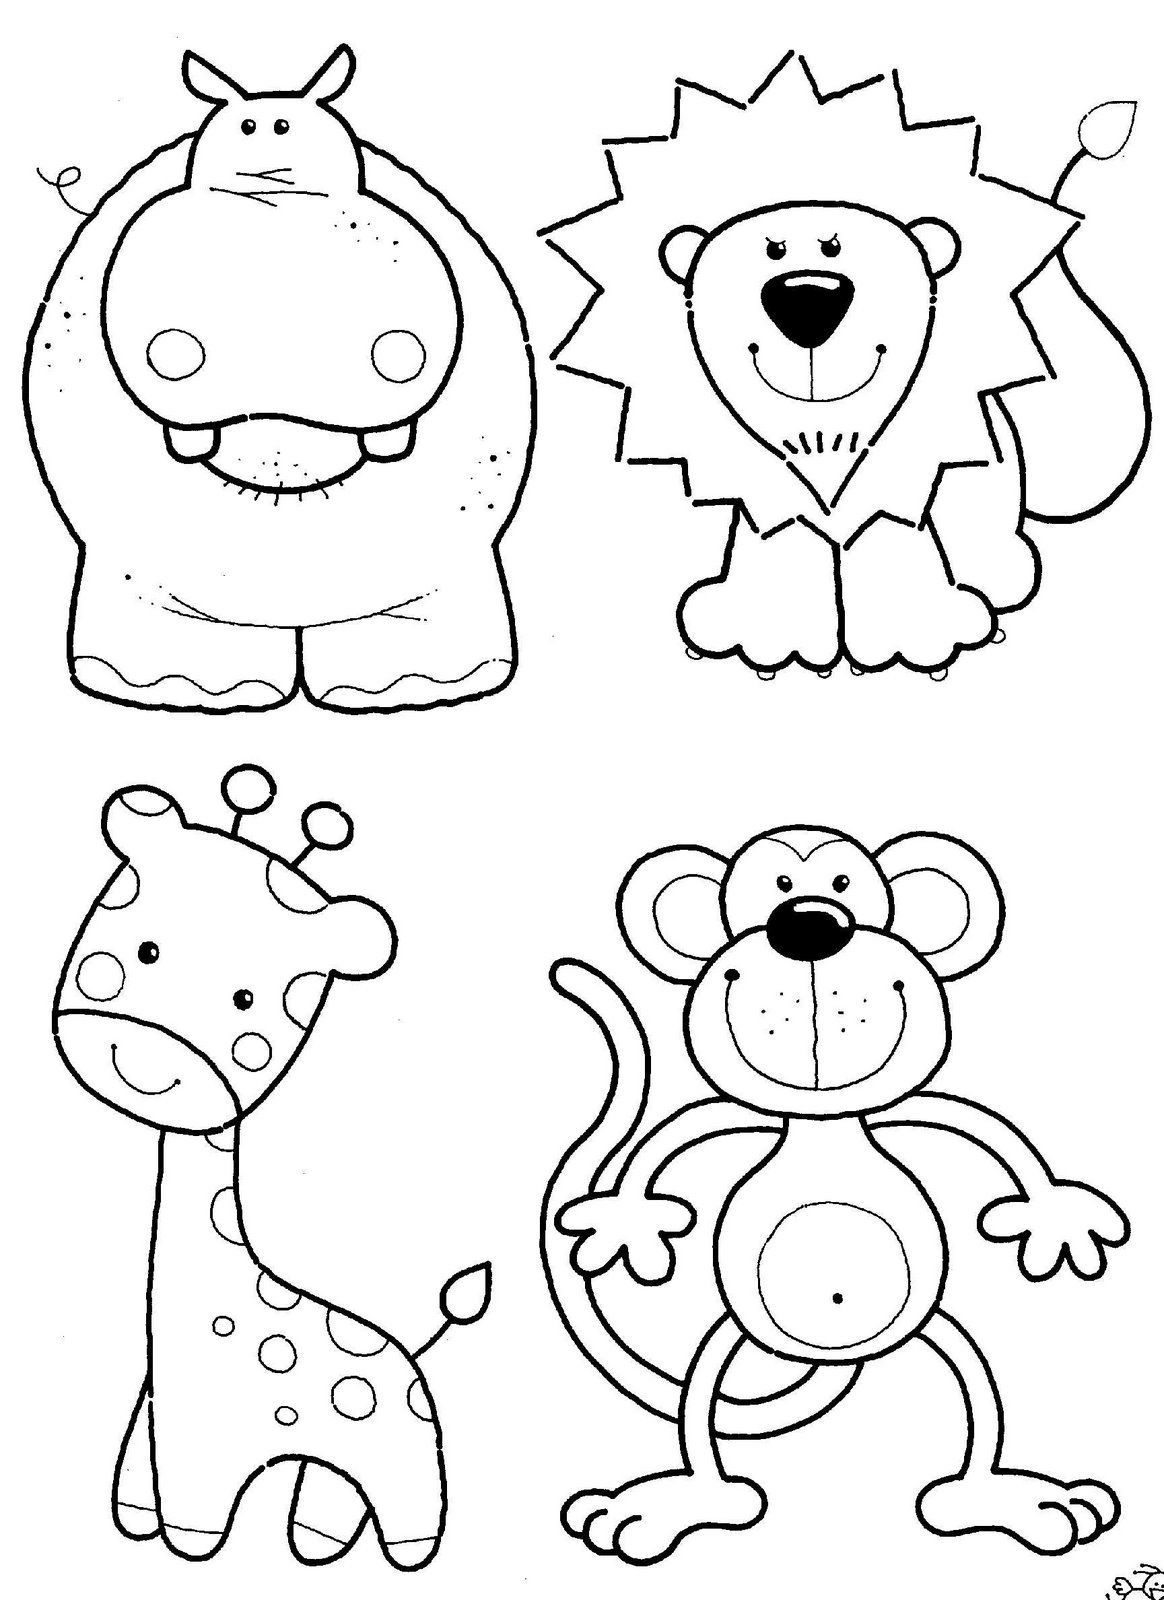 Printable coloring pages jungle animals - Cute Animals